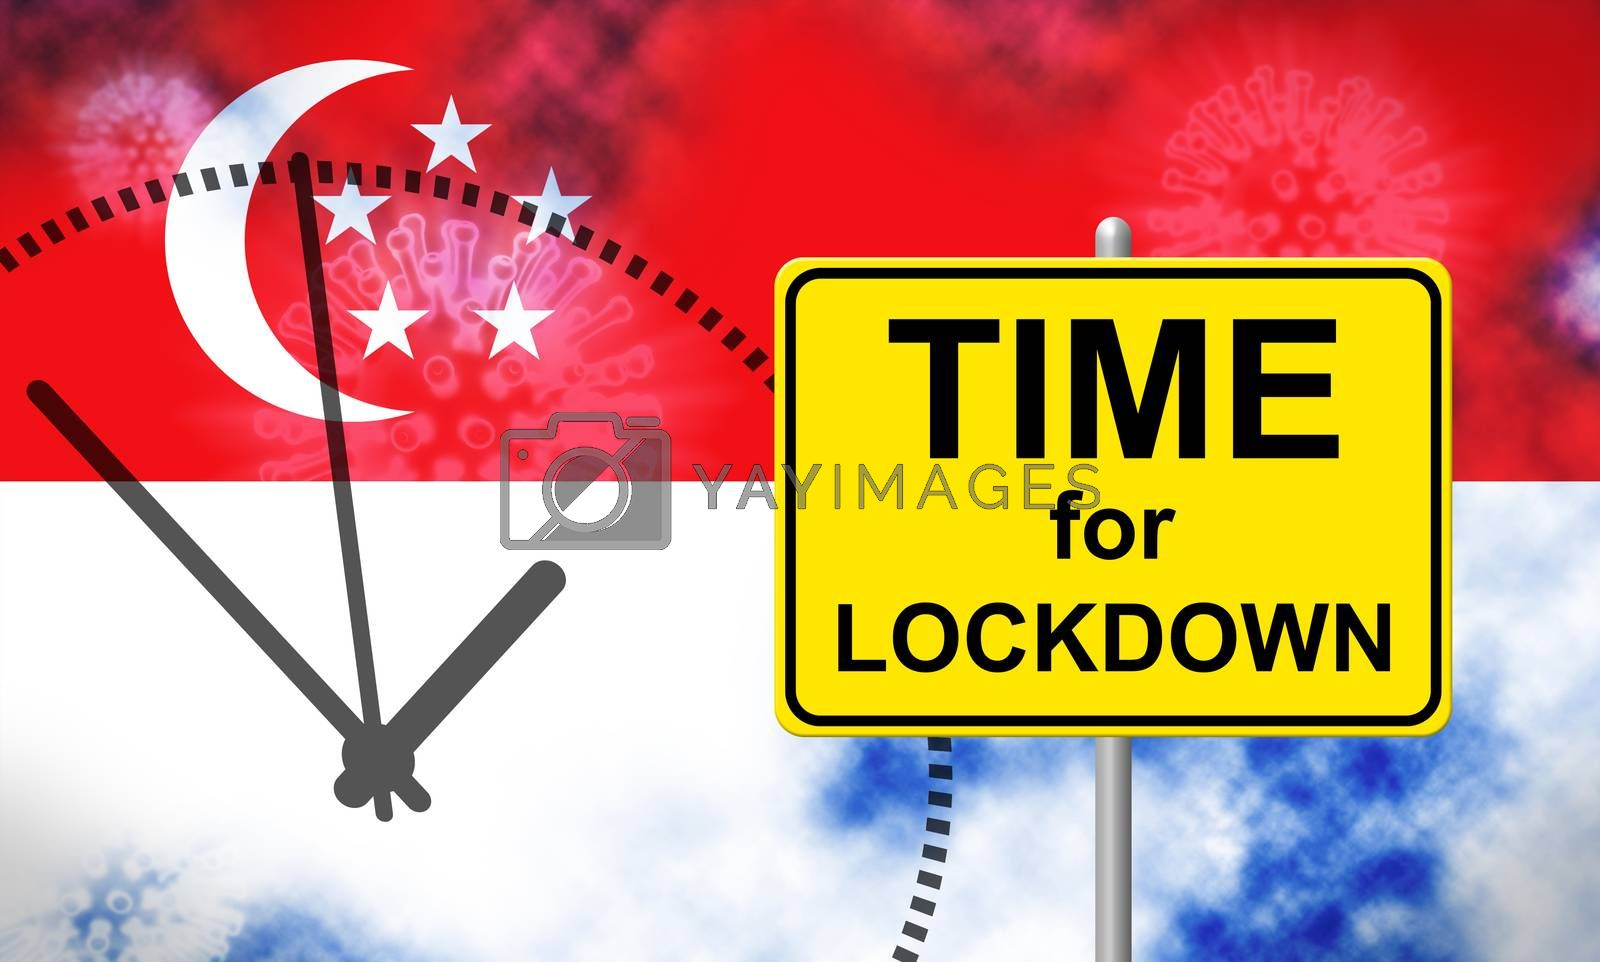 Singapore lockdown preventing ncov pandemic and outbreak. Covid 19 Singaporean precaution to isolate disease infection - 3d Illustration